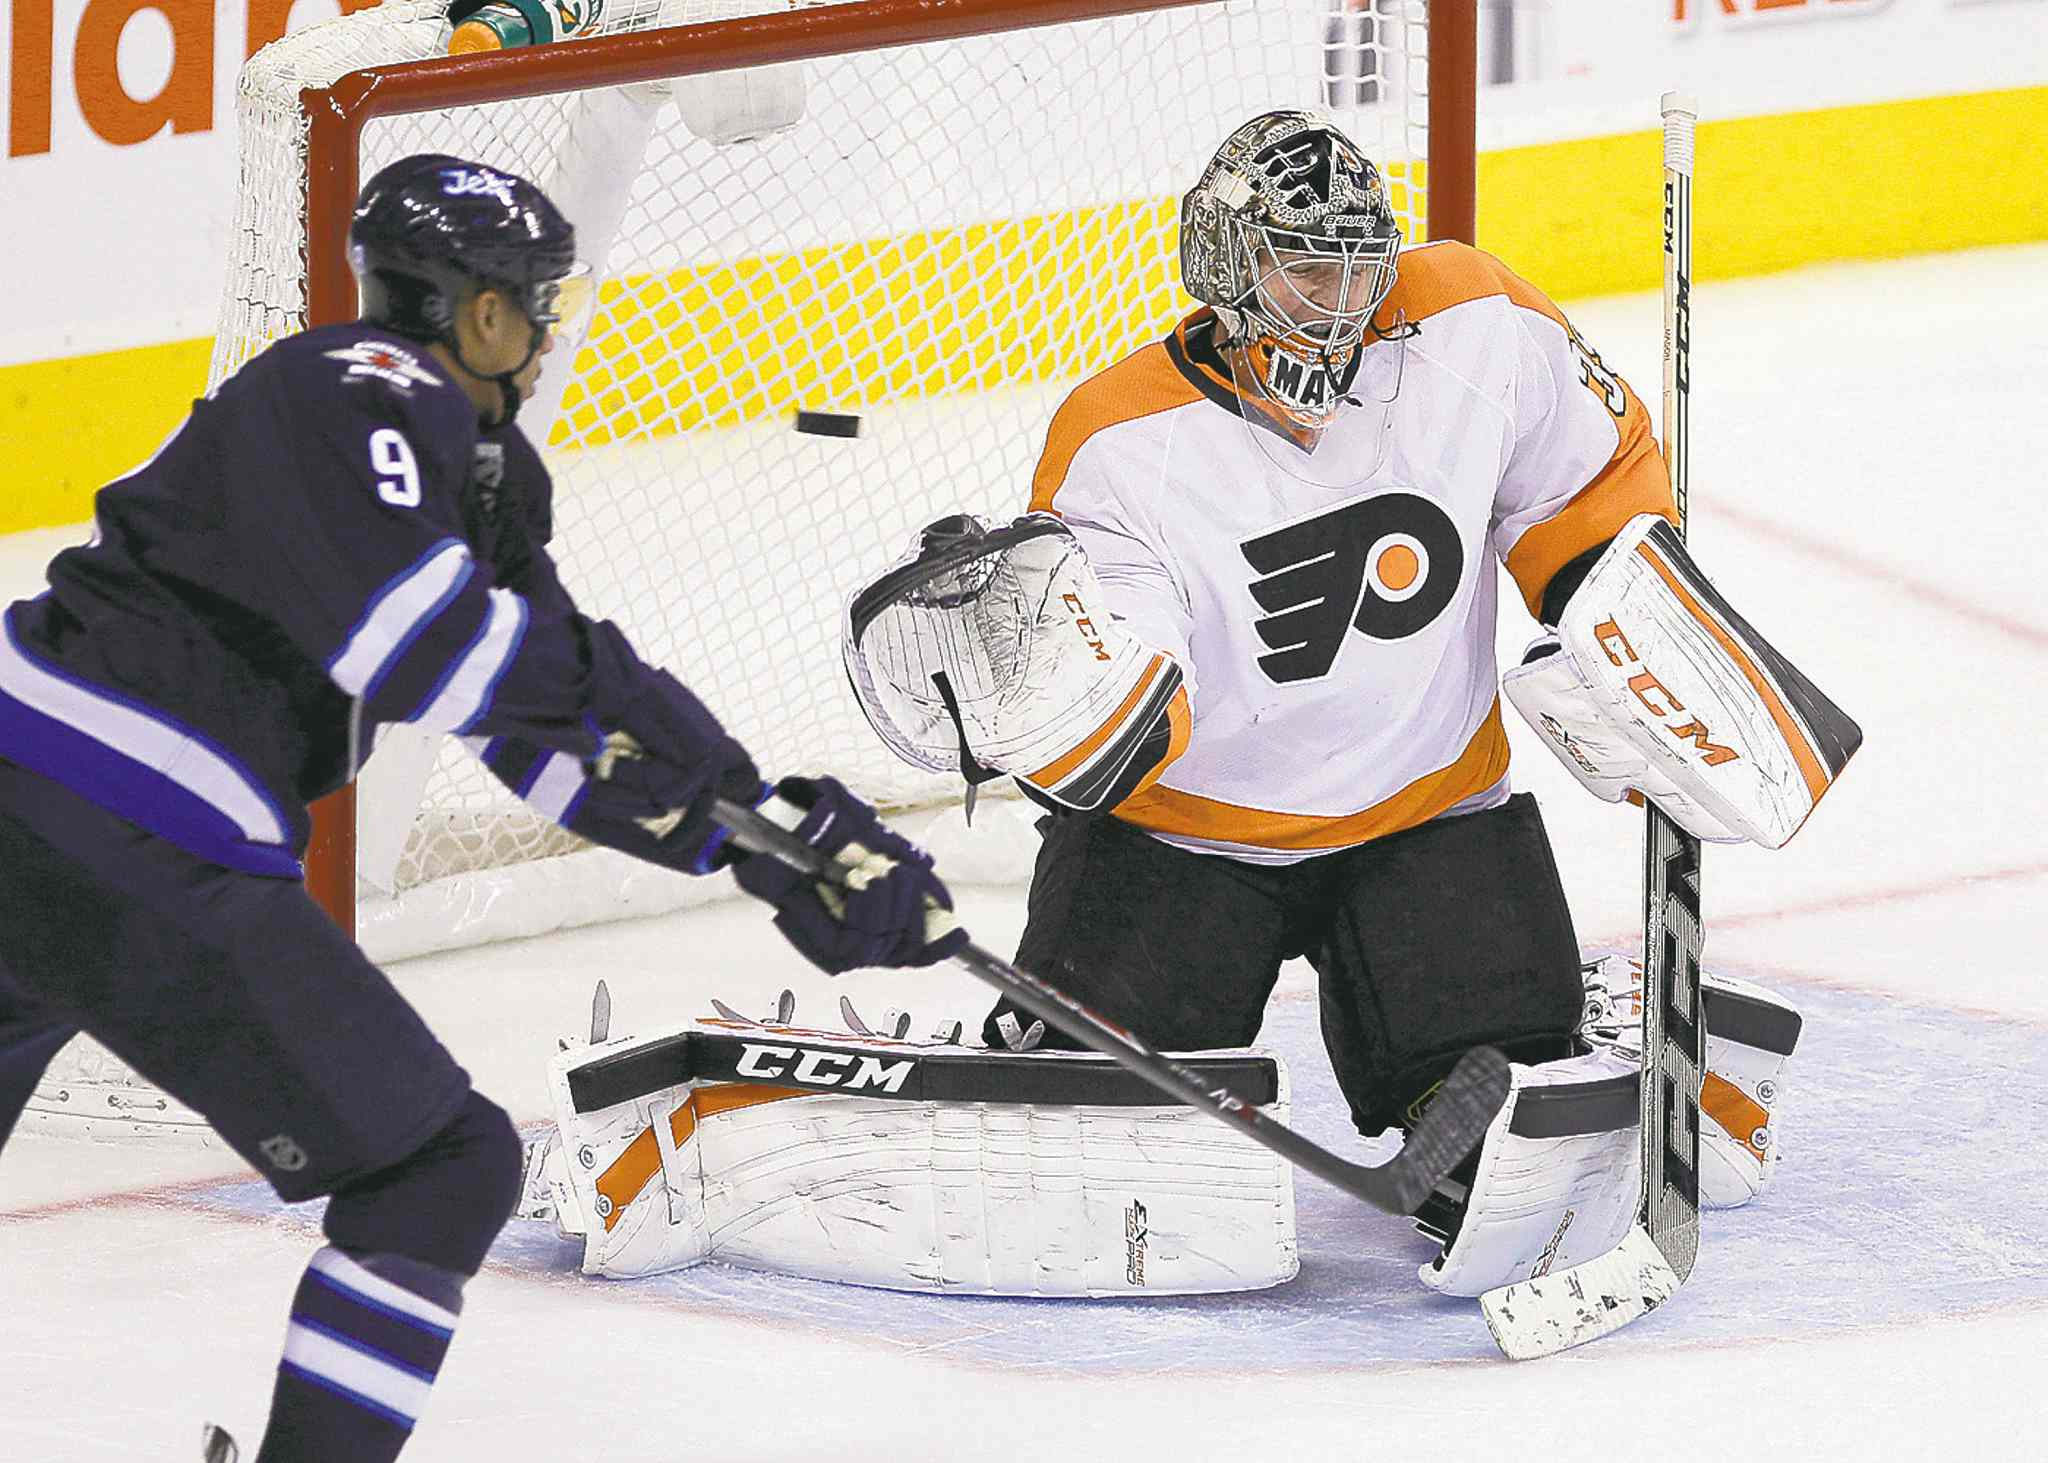 The Jets put two power-play goals past Flyers netminder Steve Mason on Friday night.